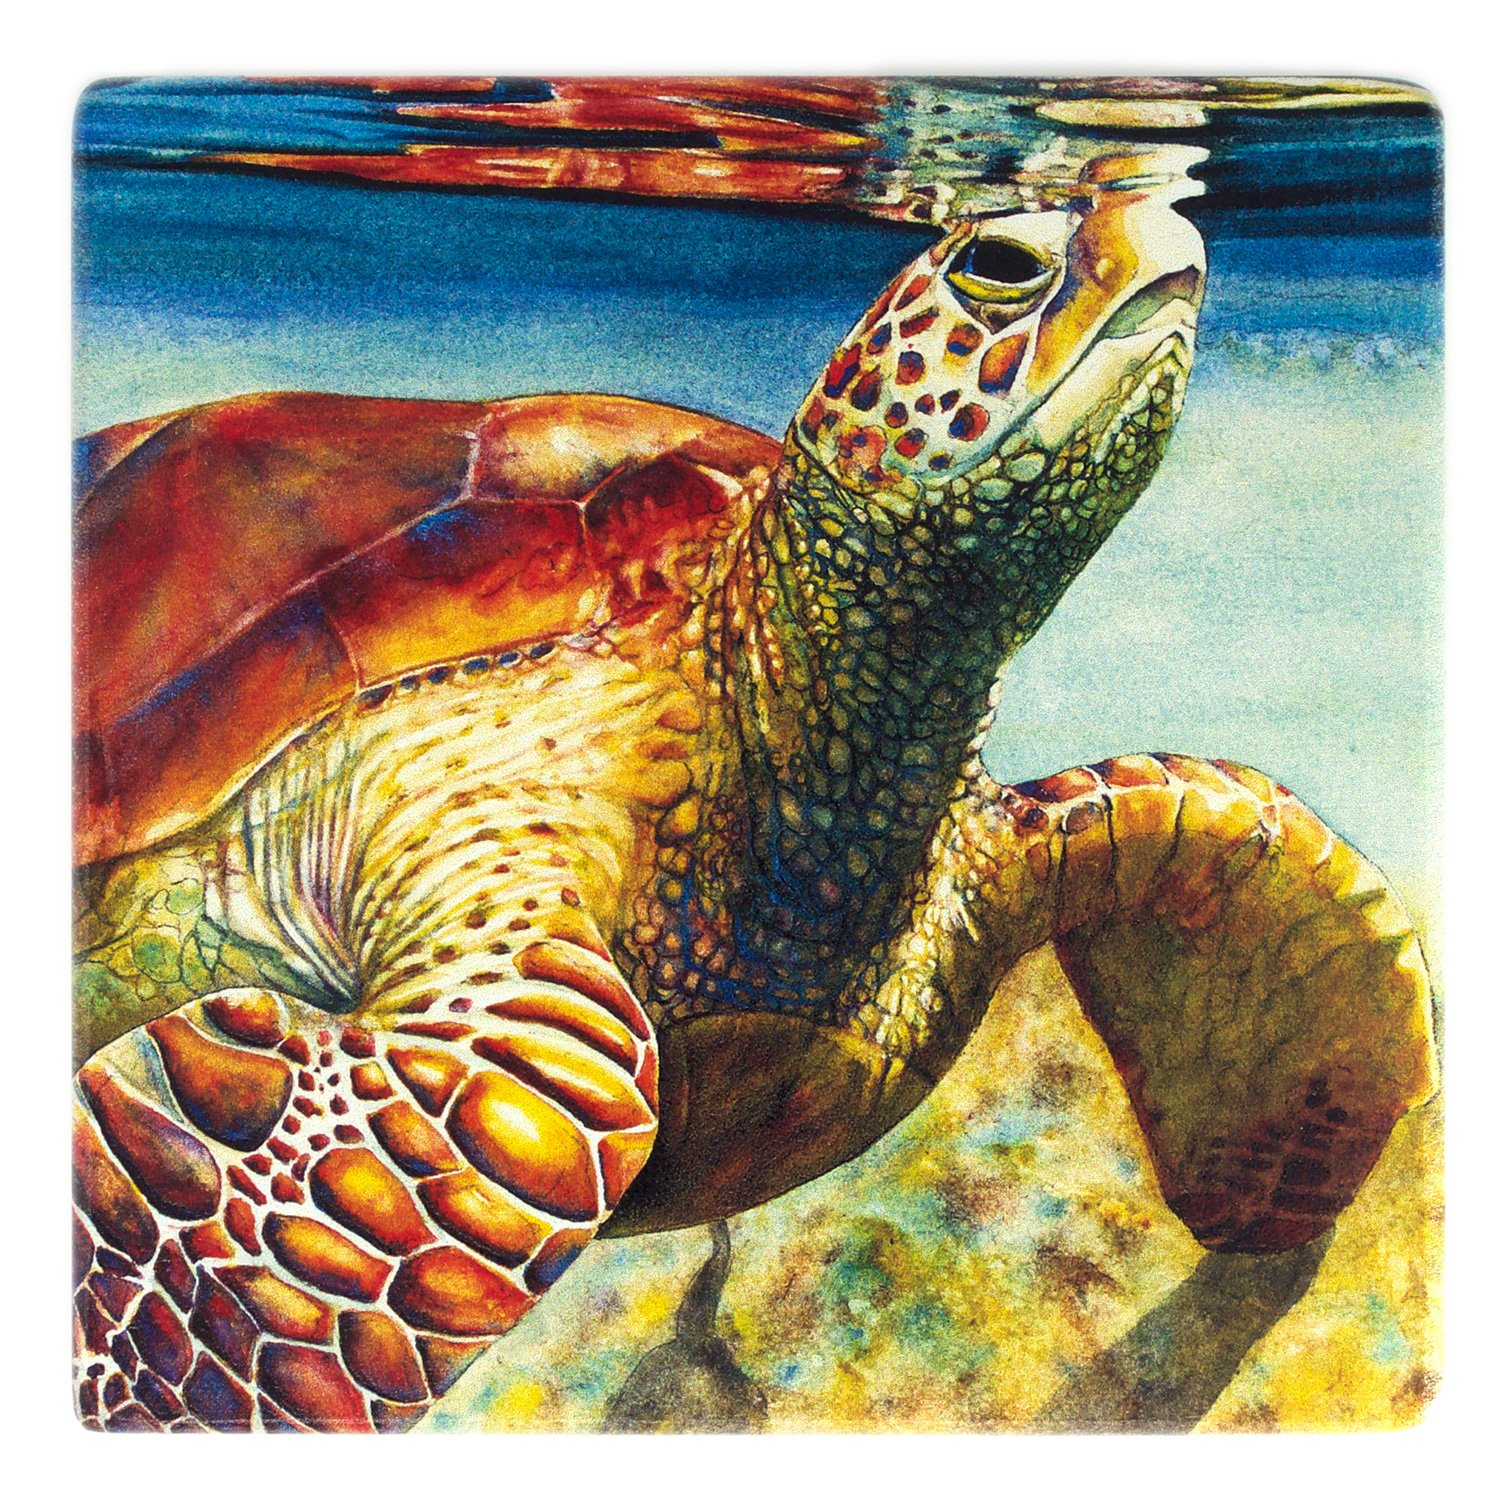 Sea Turtle Surfacing Wooden Coaster - Watercolor Art by Colleen Nash Becht